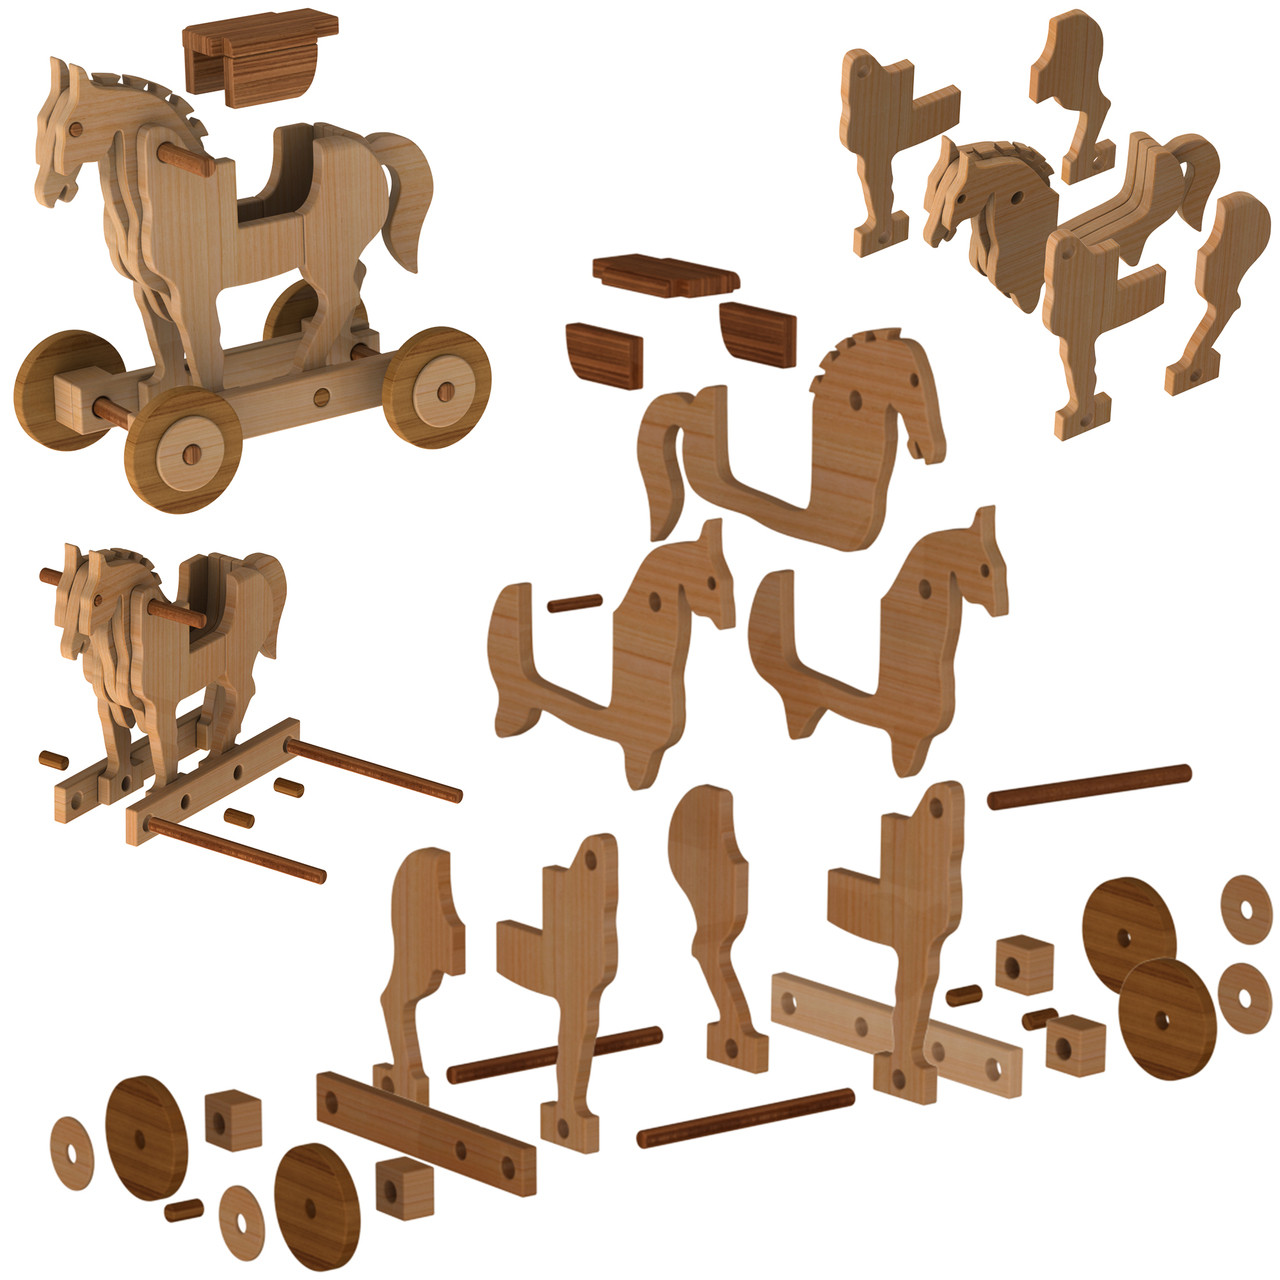 trojan ride-on horse + catapult & soldiers wood toy plans (pdf download)